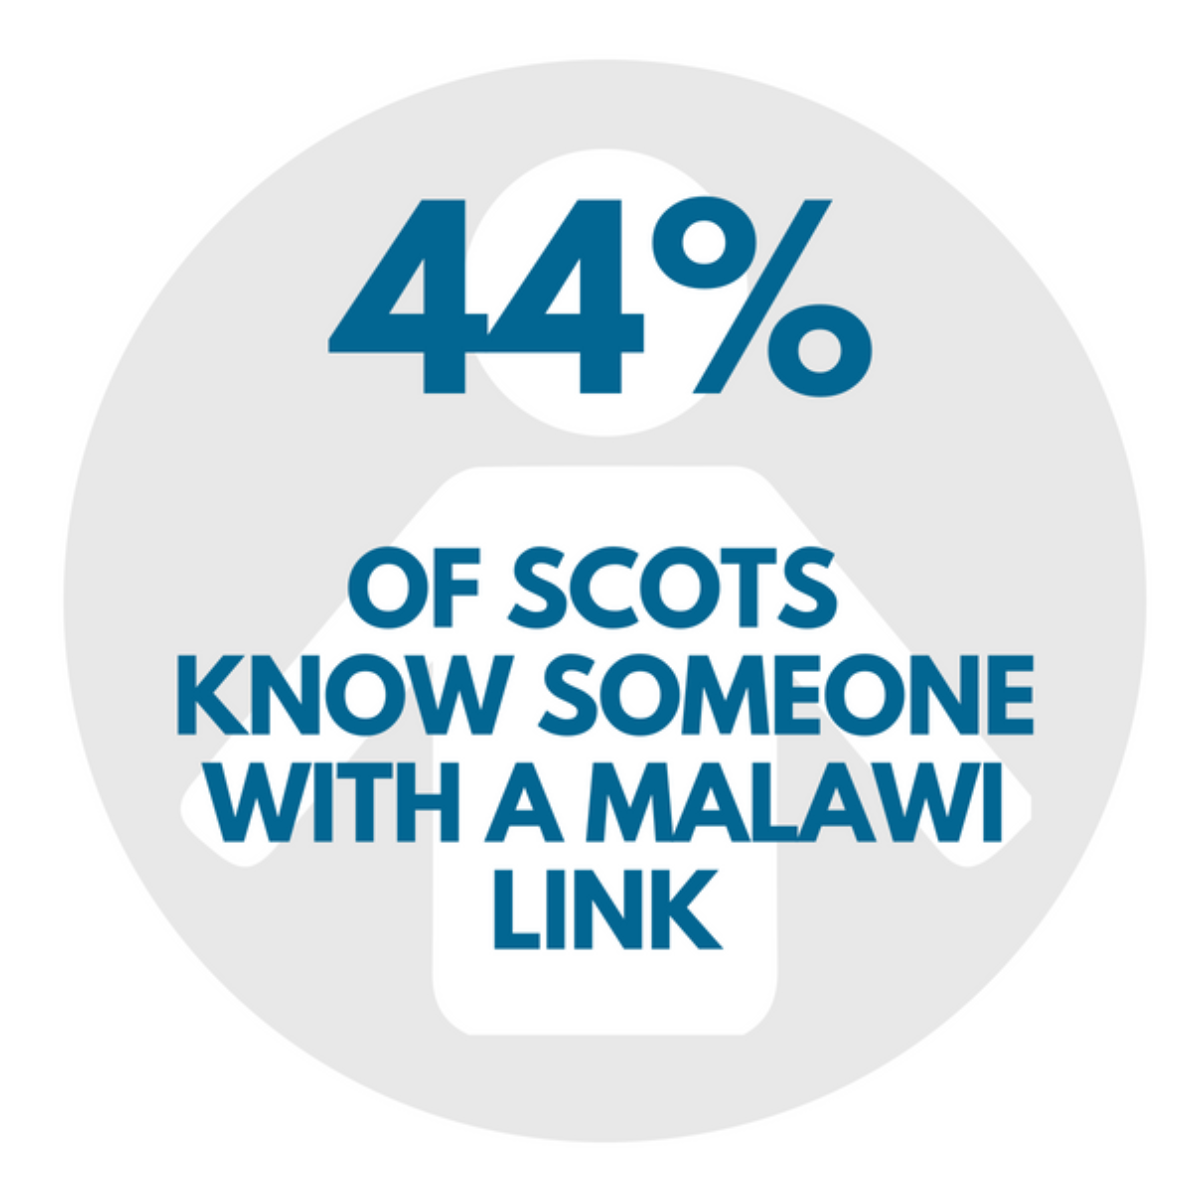 44 of scots know someone with a malawi link